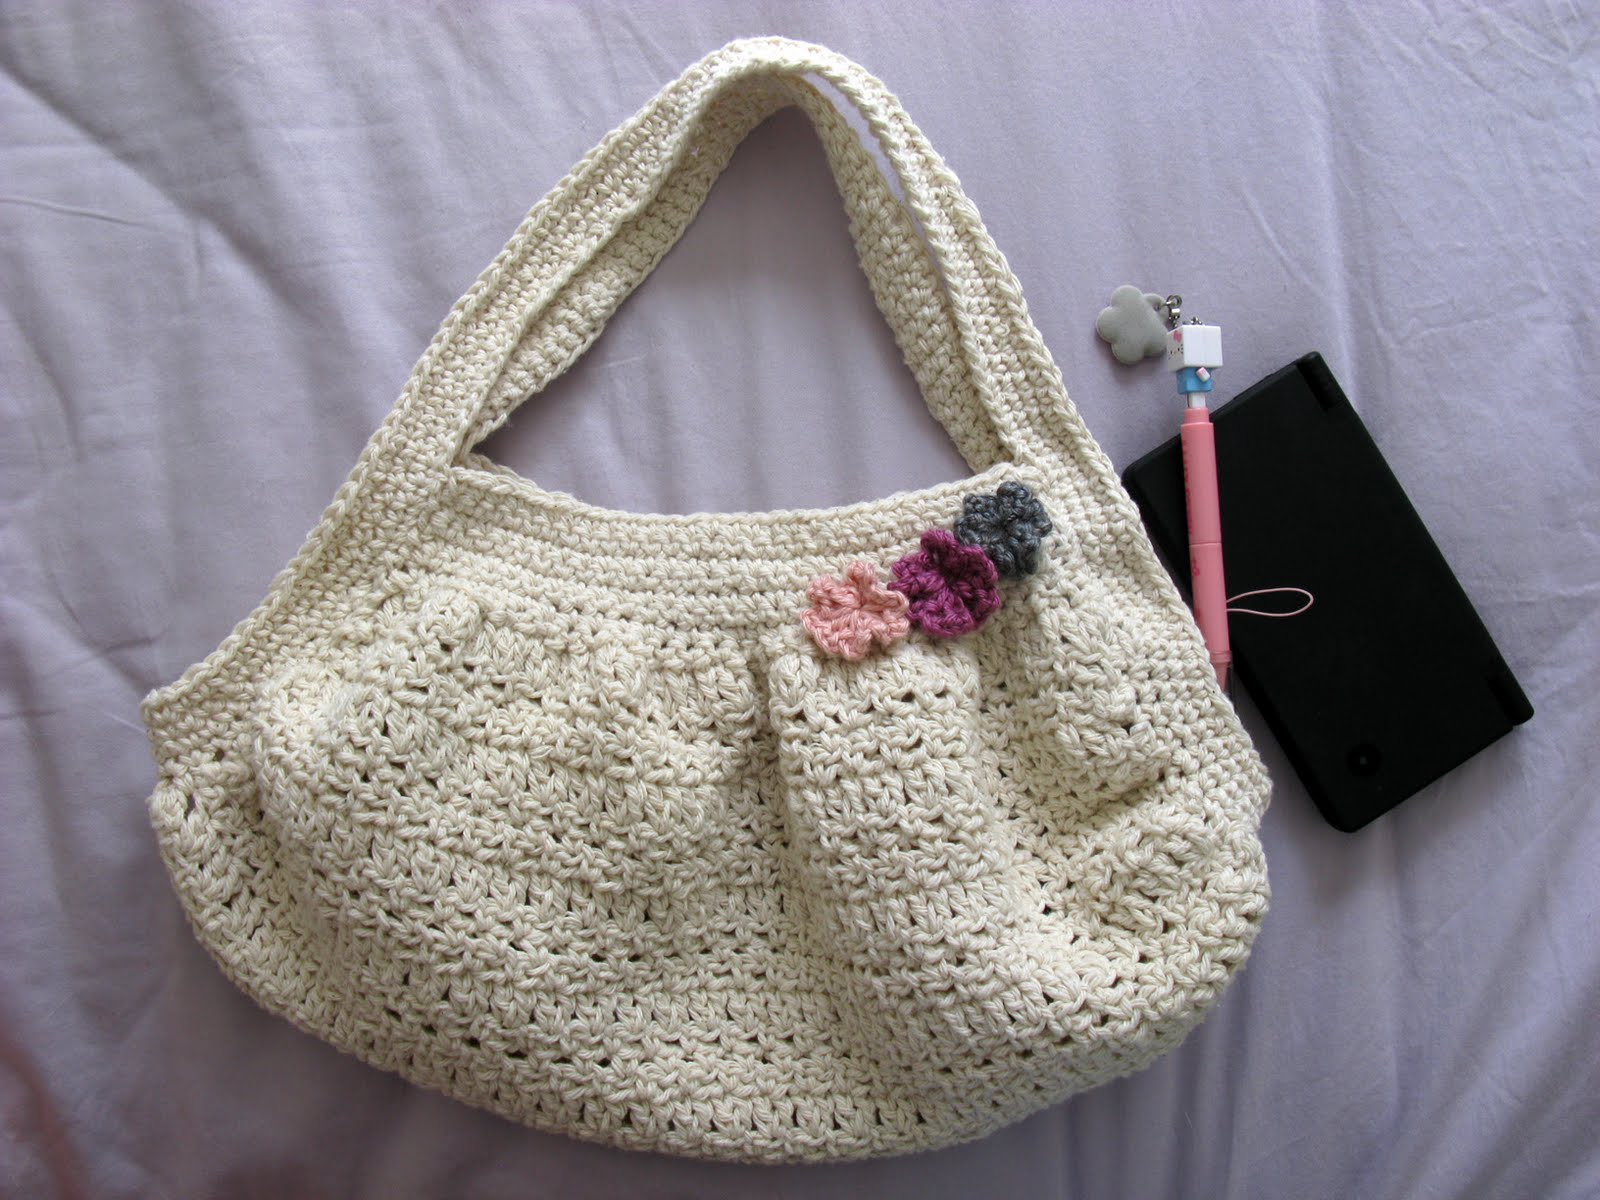 Crochet Bag Japanese Pattern : MyCreativeCard.com: Japanese Style Crochet Bag